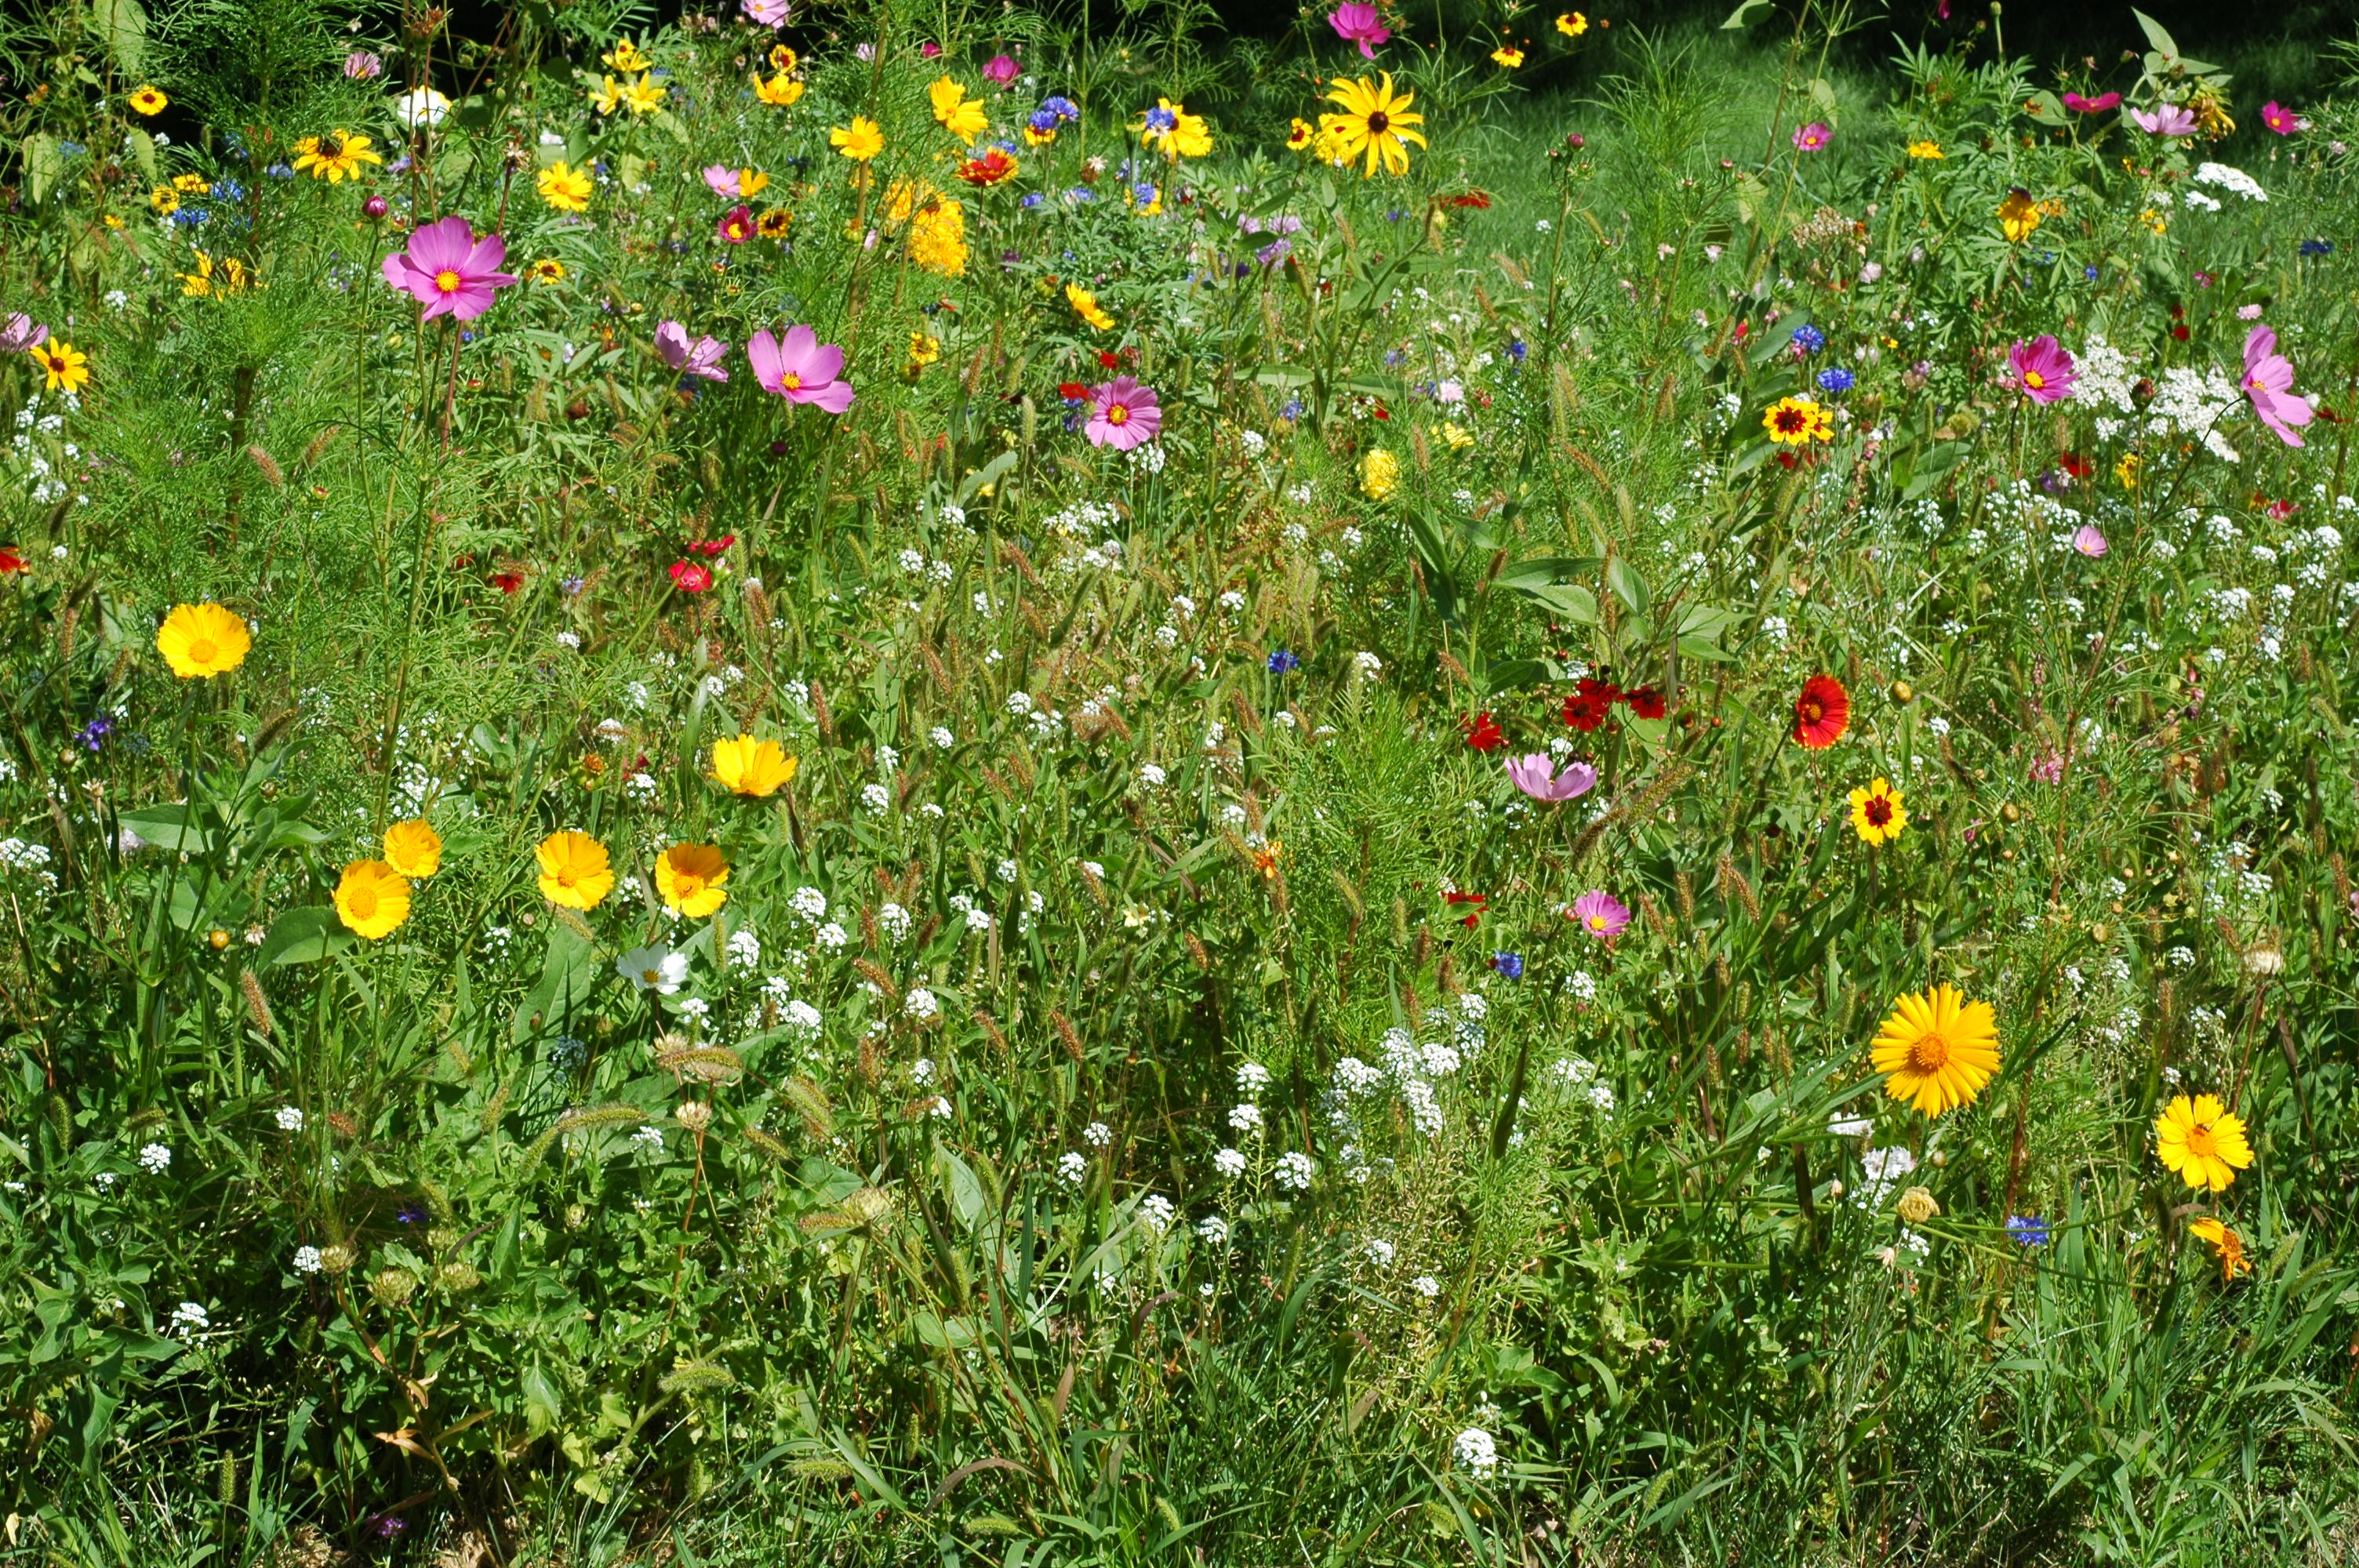 Wildflowers, which one do you like?